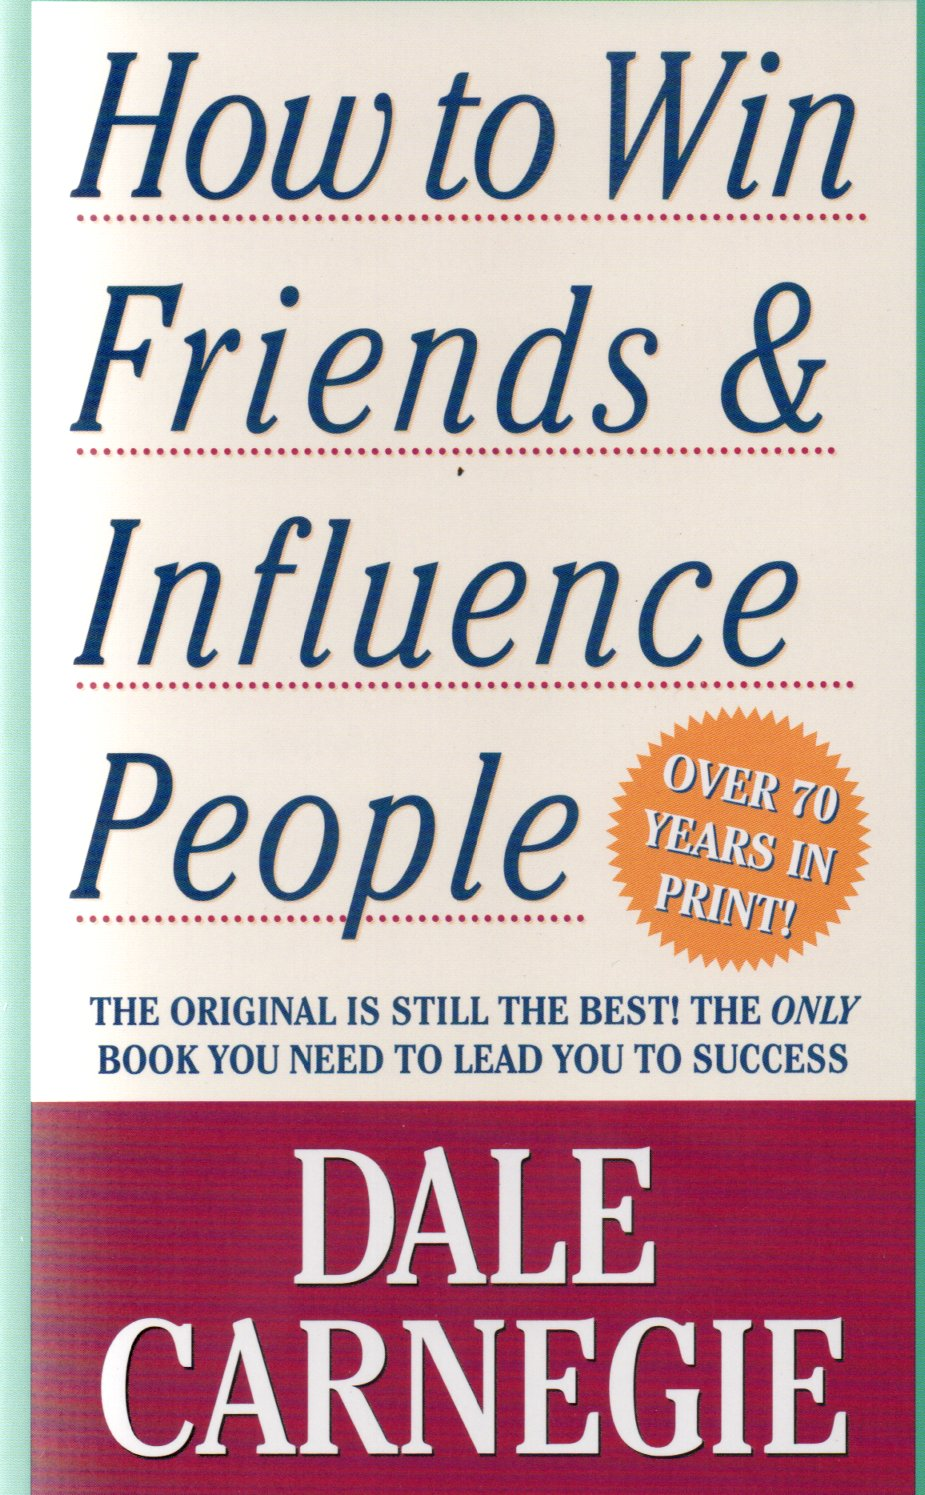 How to win friends & influence people / Dale Carnegie